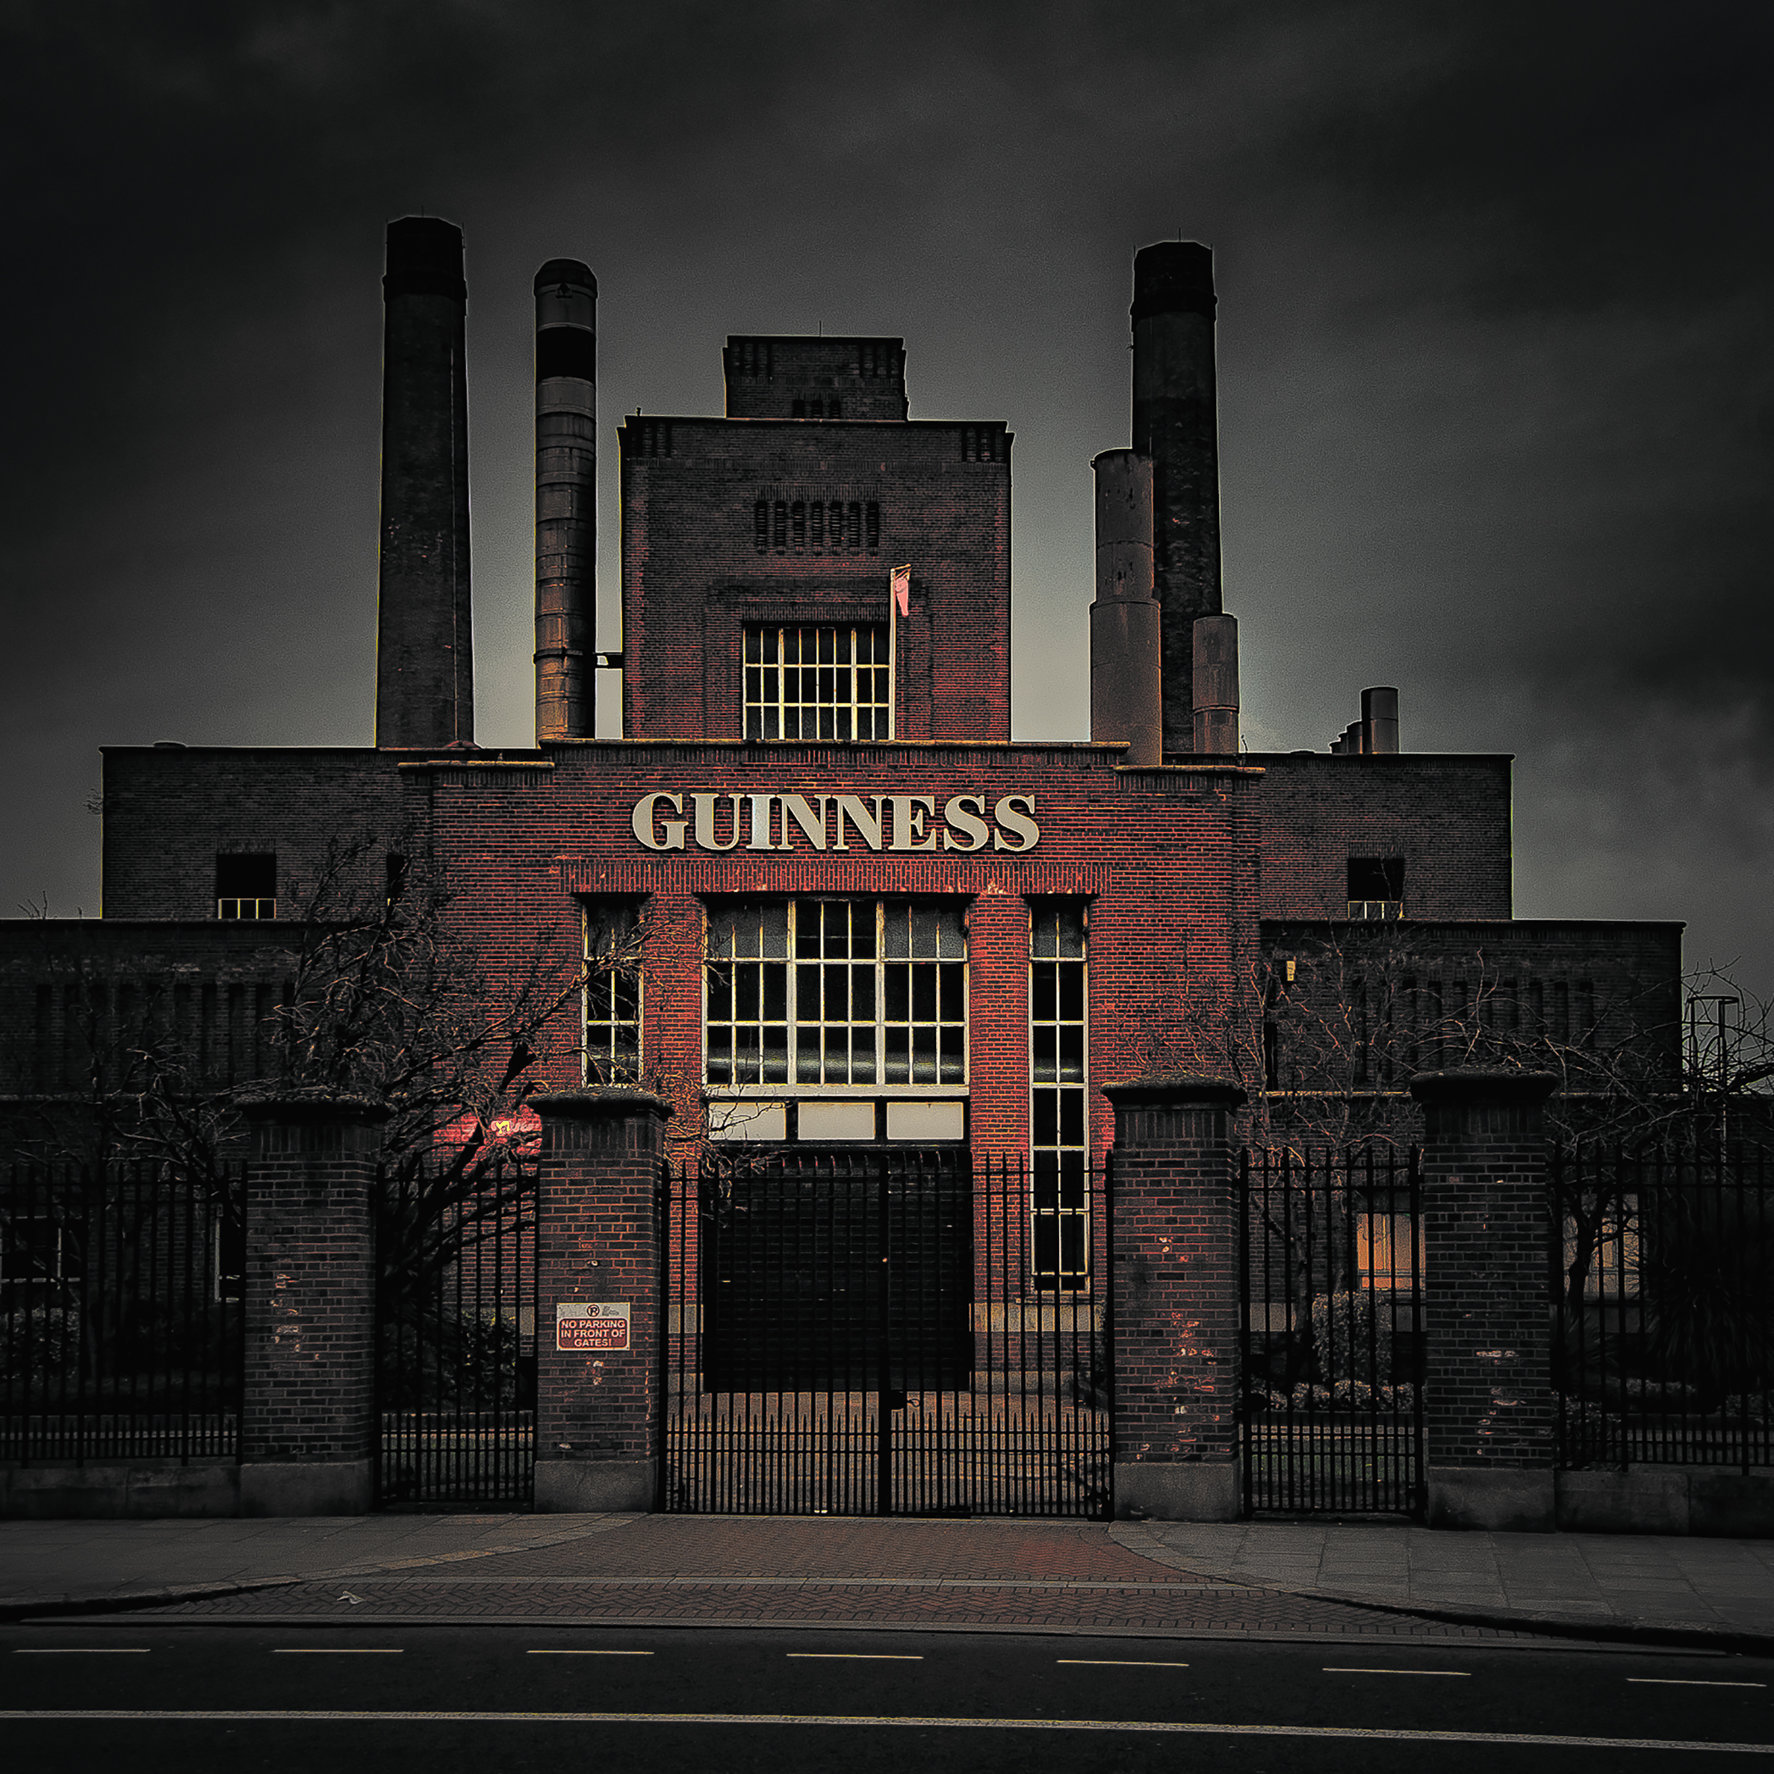 Guinness-1 black sky-MASTER COPY.jpg